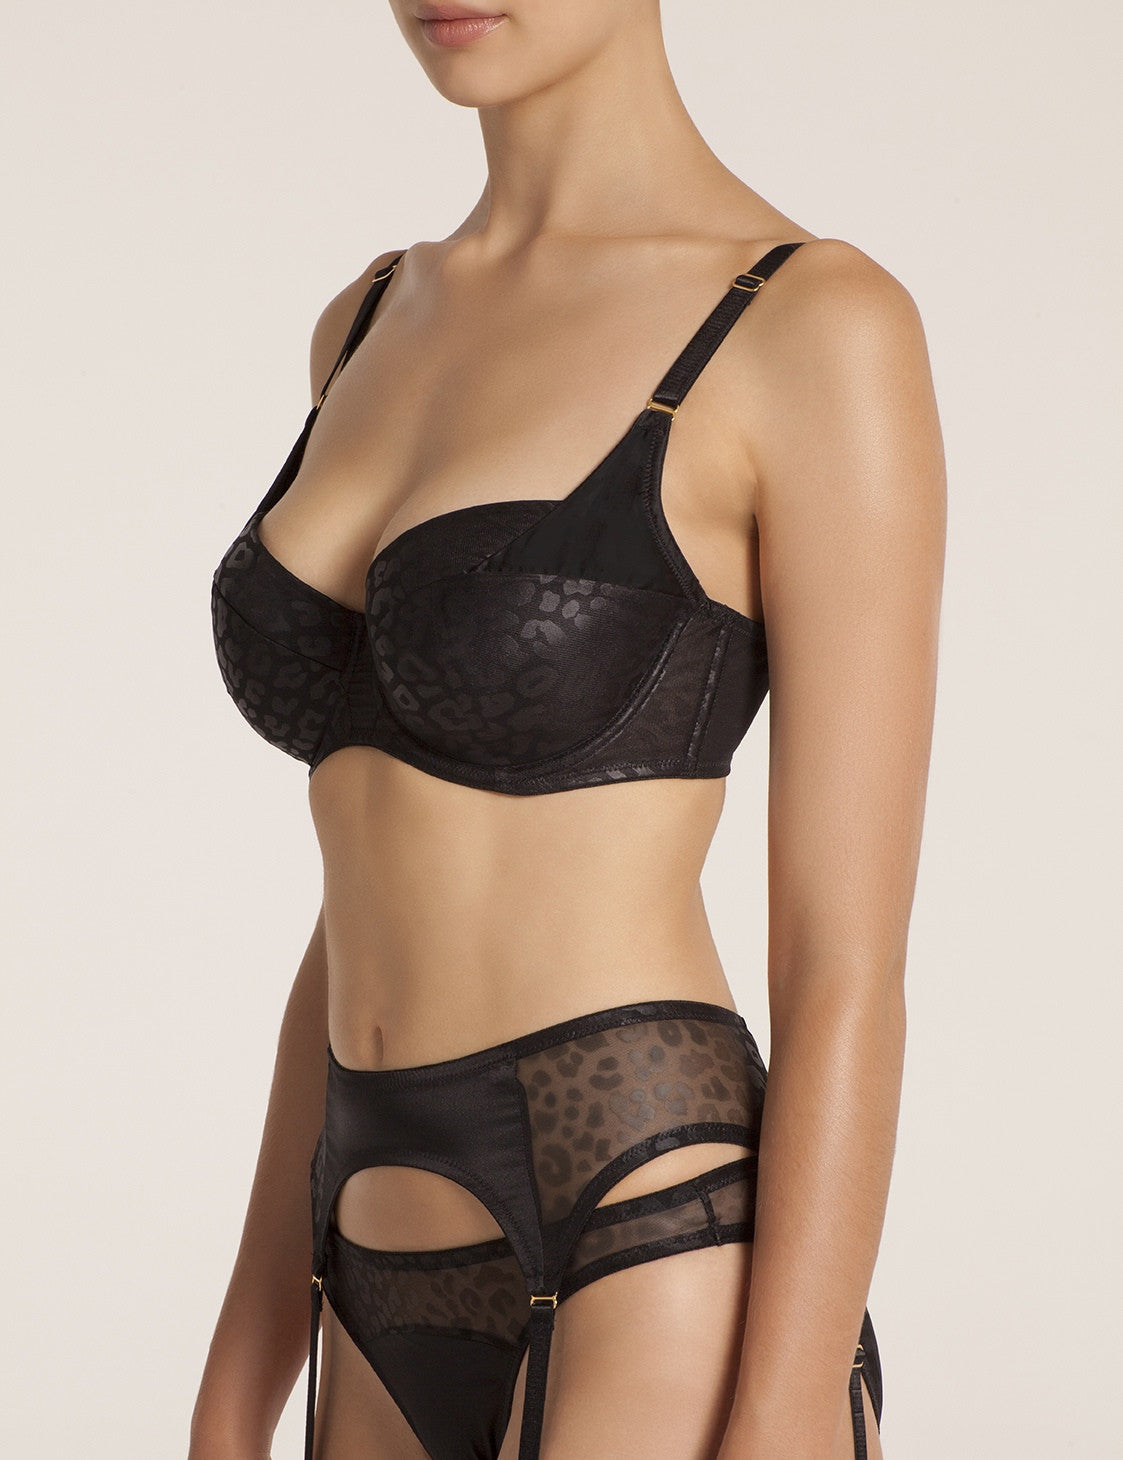 Mimi underwired padded bra